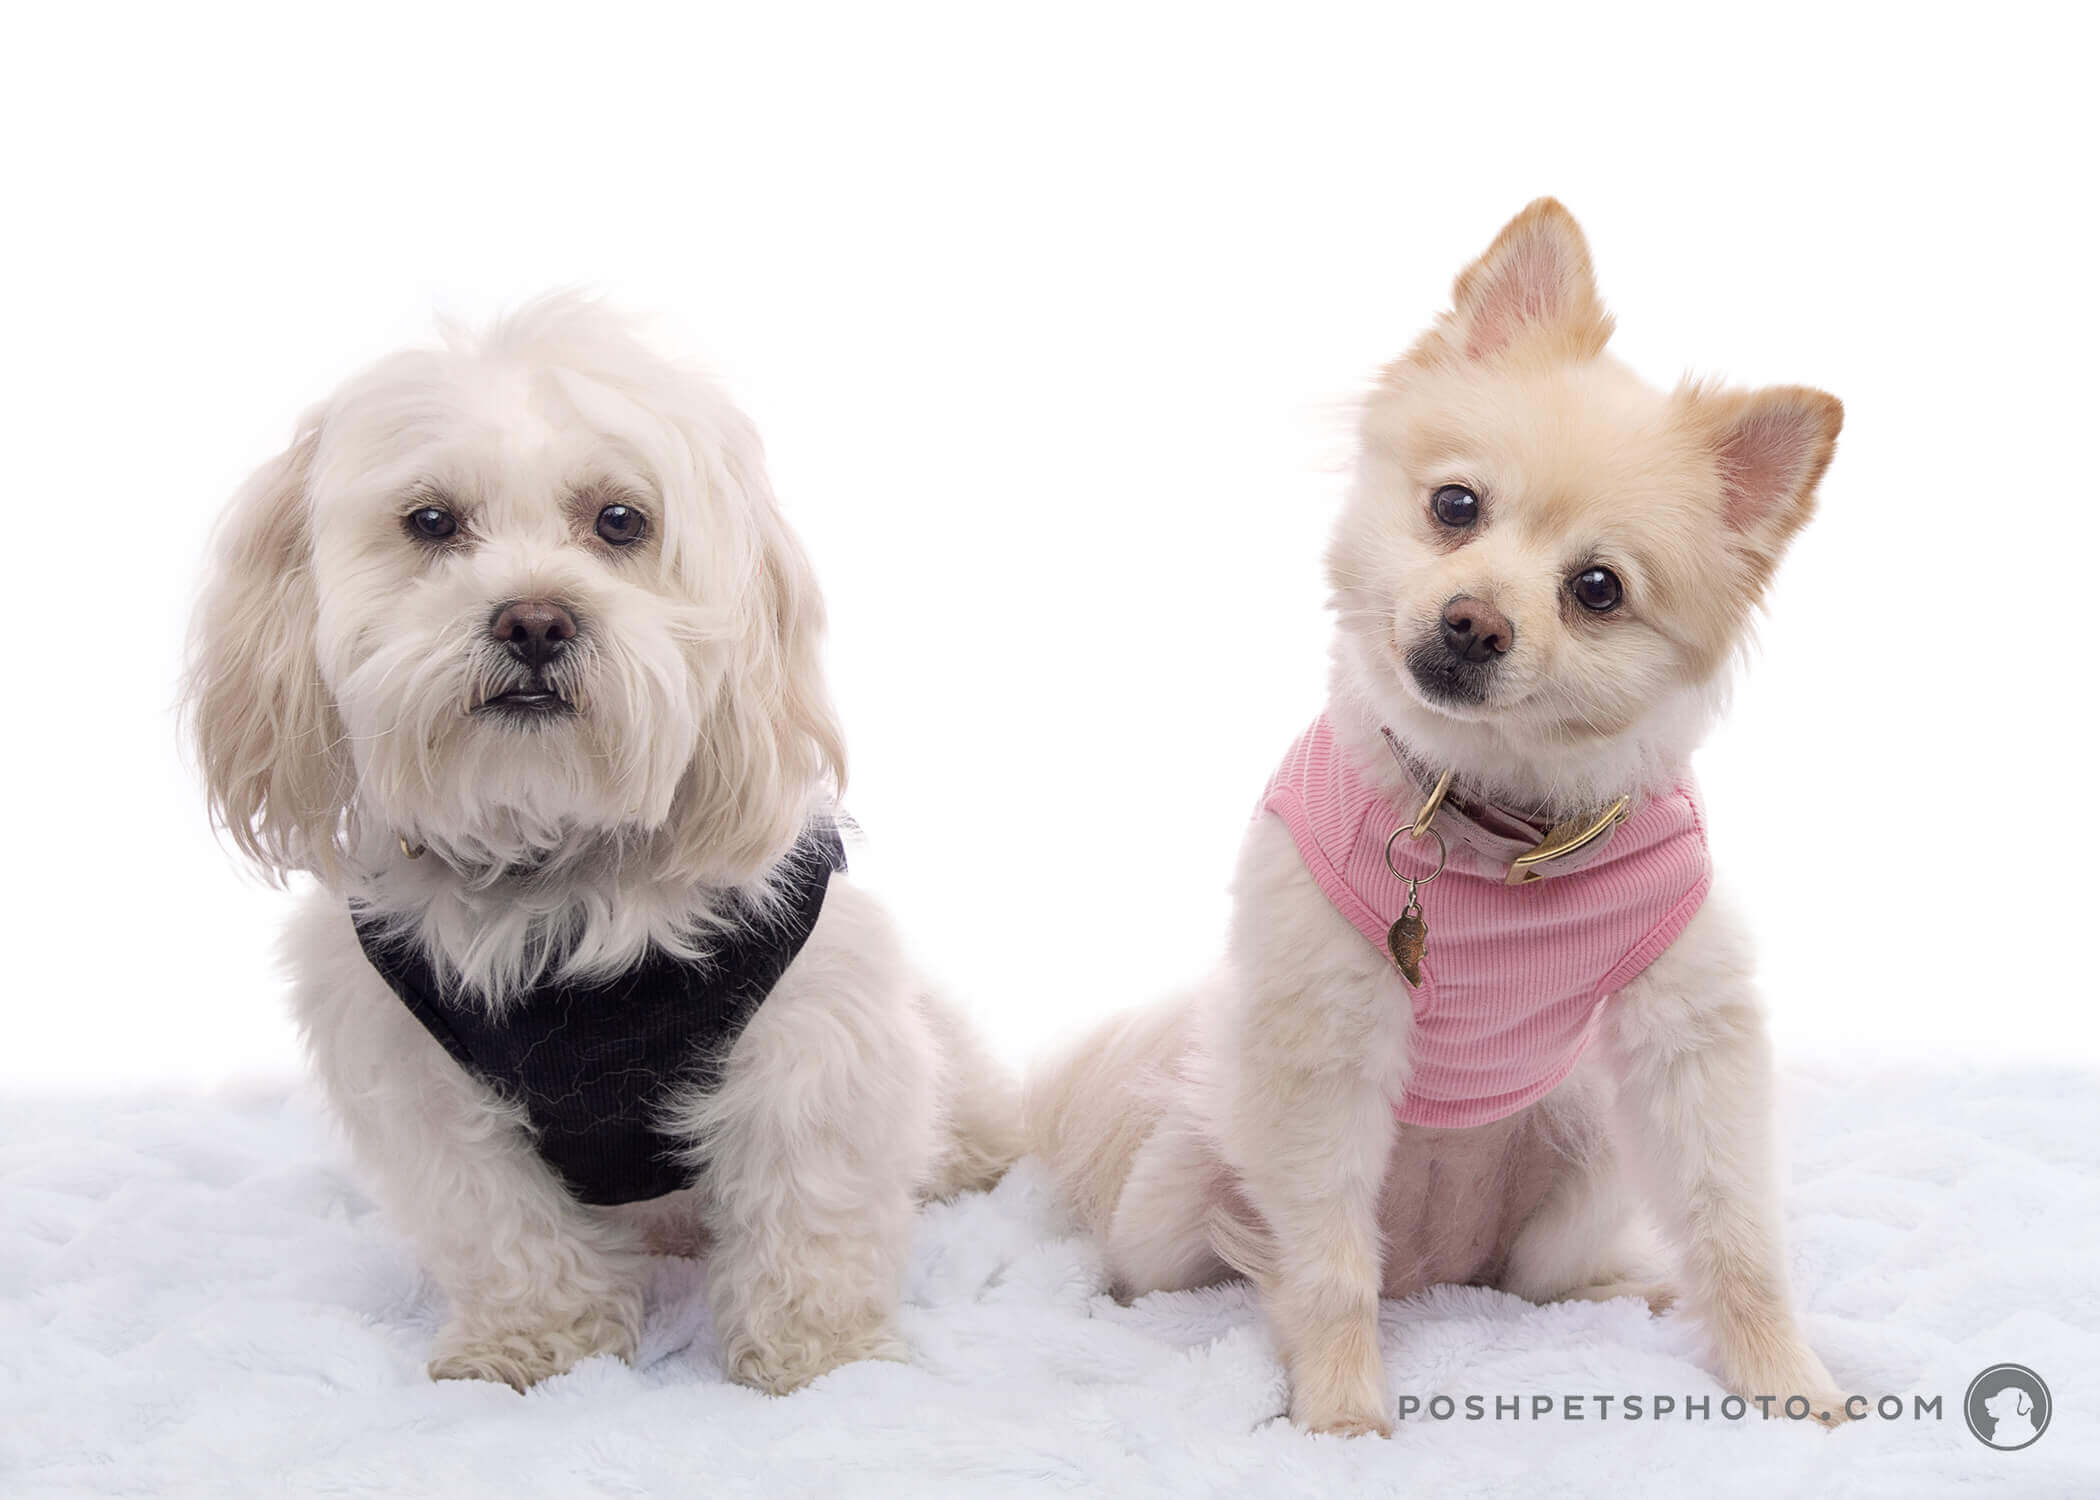 shih tzu and pomeranian dogs